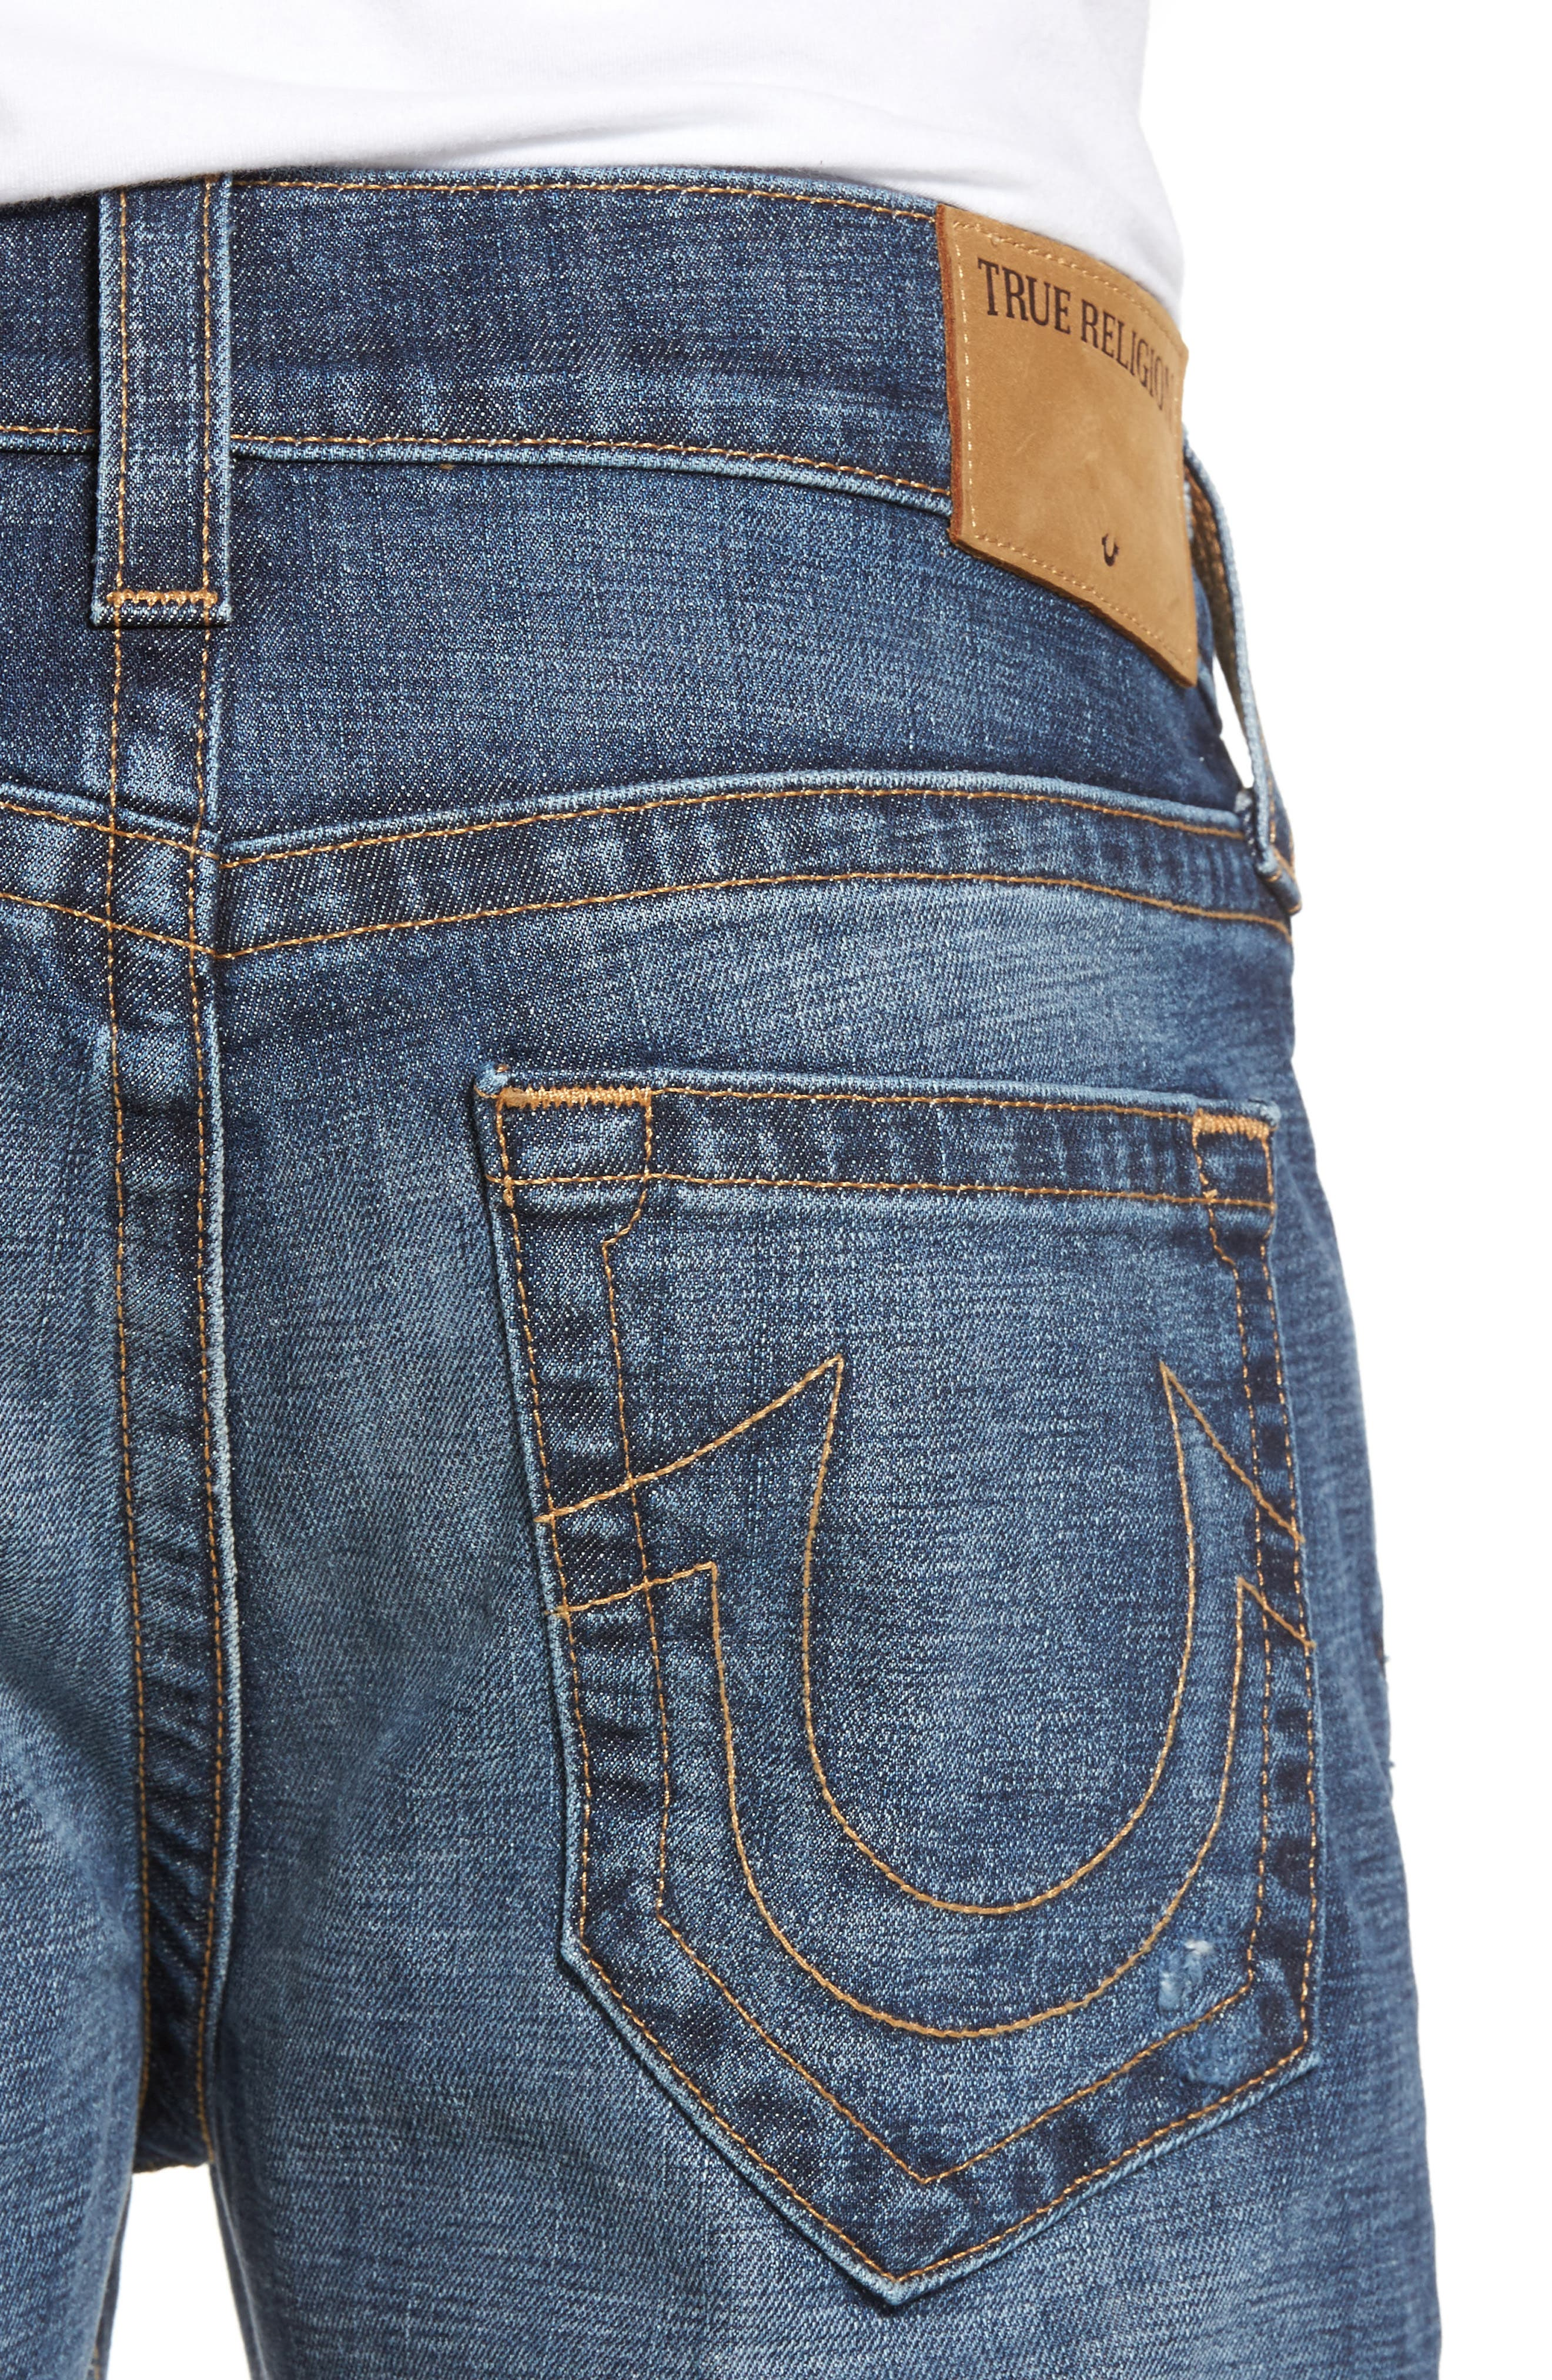 Rocco Skinny Fit Jeans,                             Alternate thumbnail 4, color,                             Dark Wash